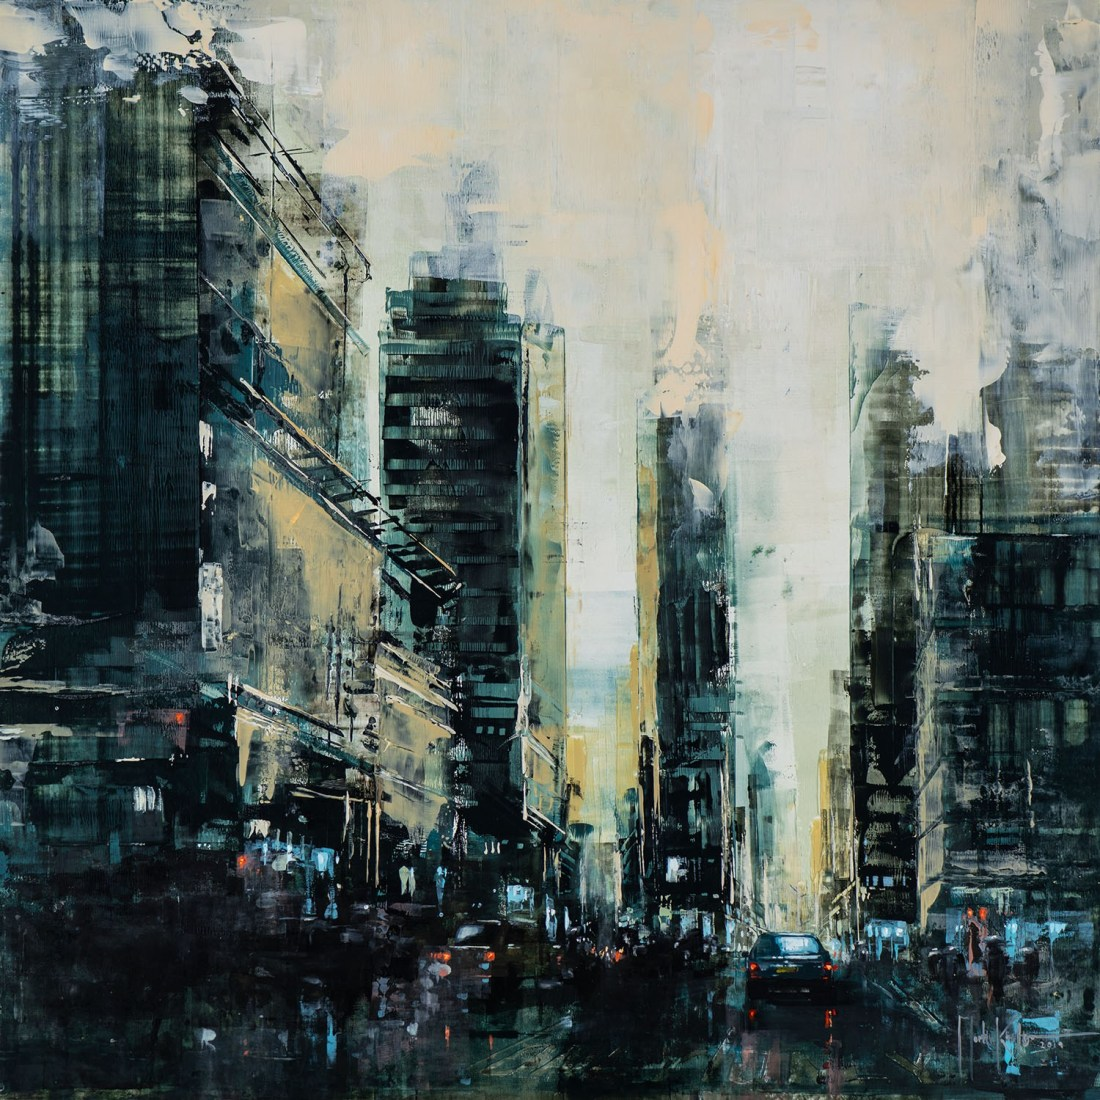 Martin Köster, NYC Time Square day I, Oil on panel, Unikat, 2019, 80 x 80 cm